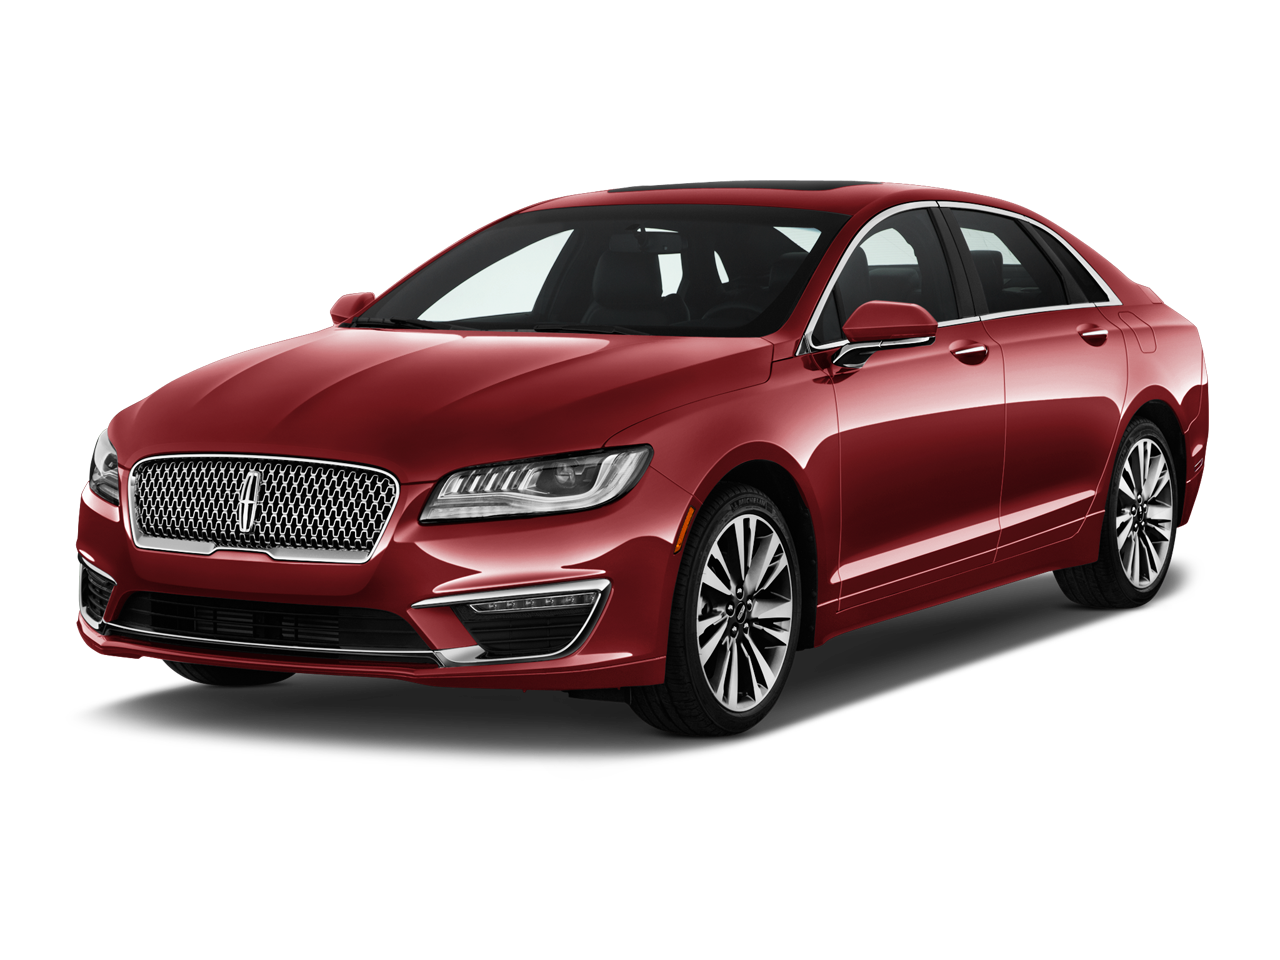 New 2017 lincoln mkz hybrid reserve near bloomington in - 2017 lincoln mkz hybrid interior ...